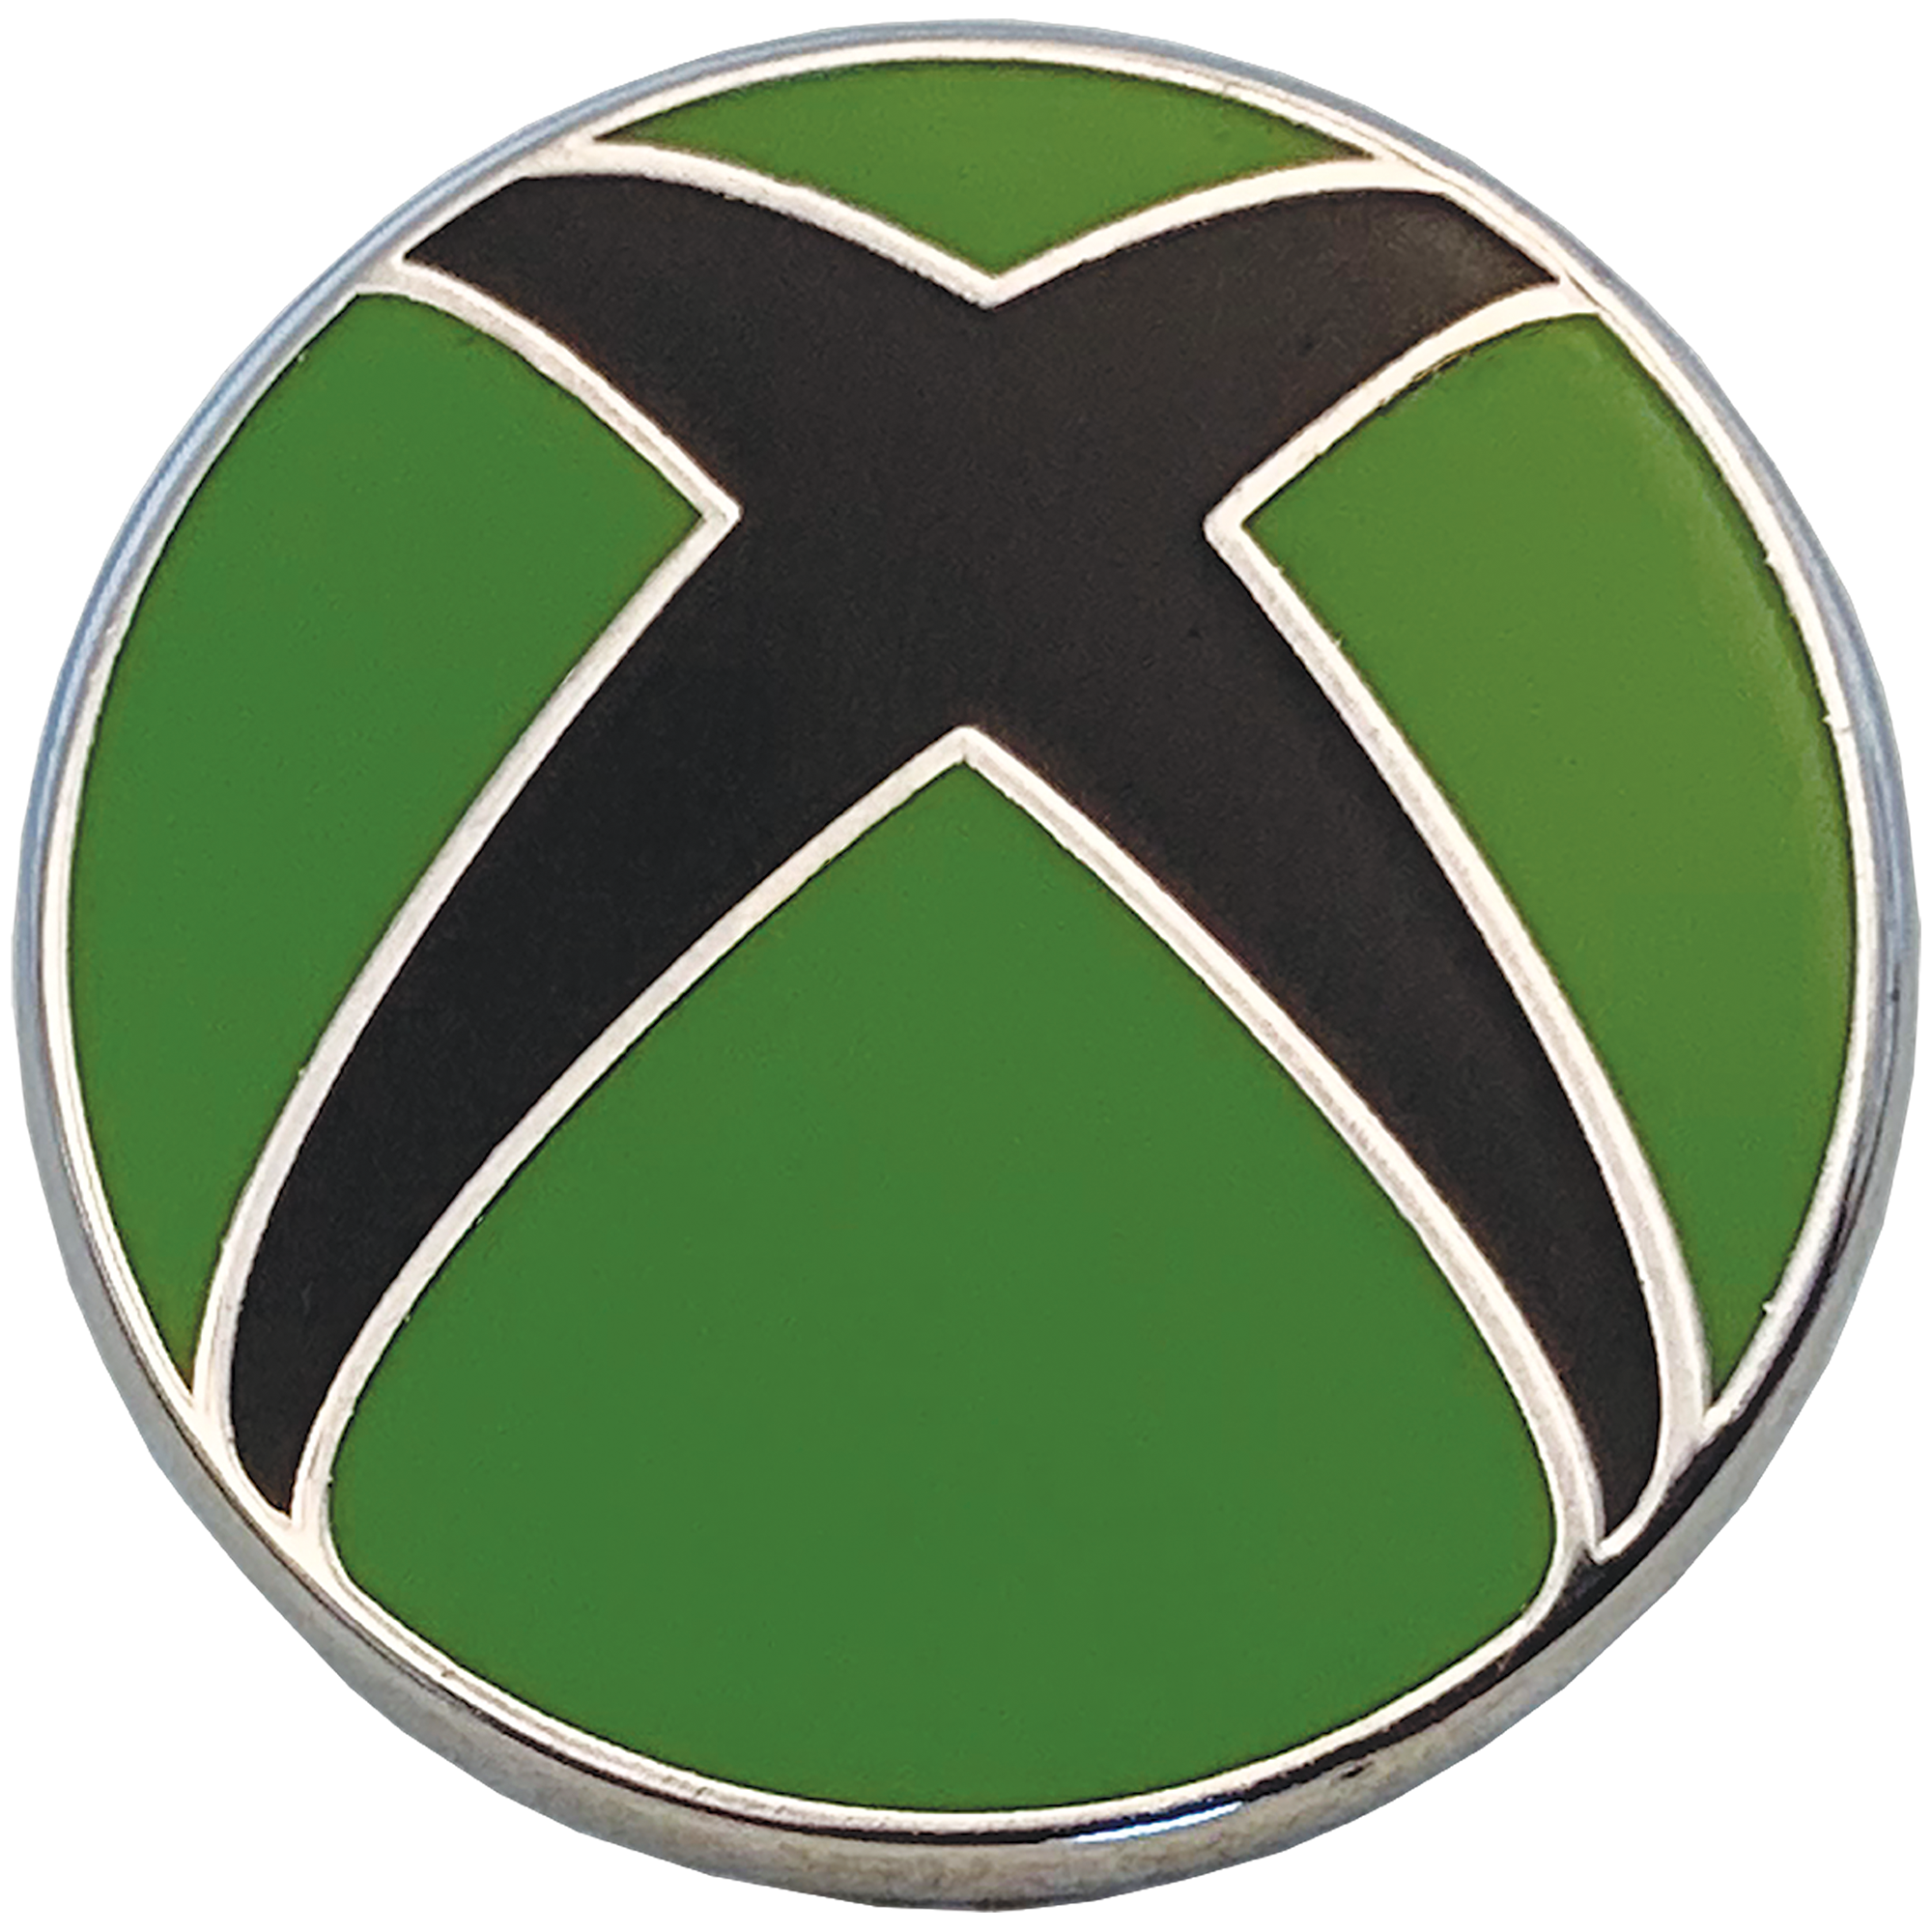 Xbox Green Sphere Pin for Xbox Gear Store